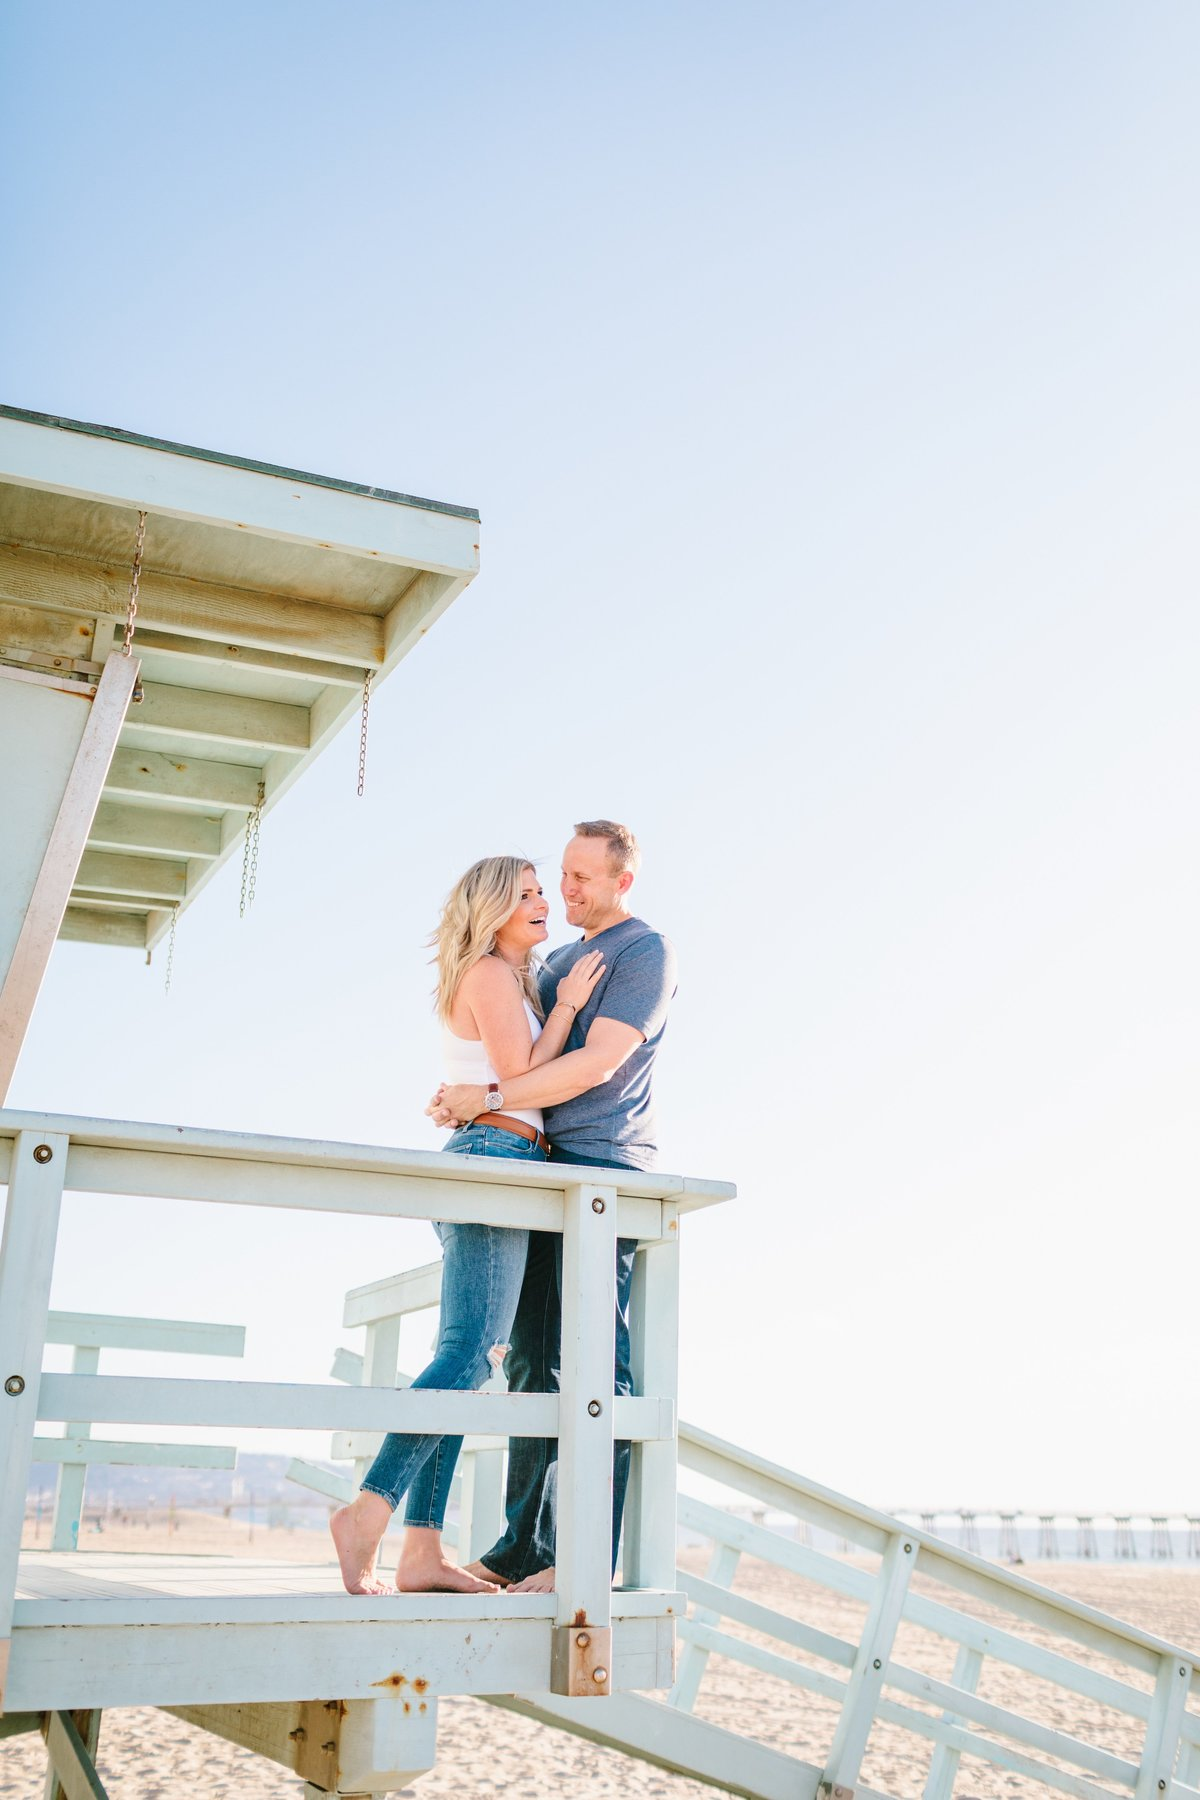 Best California Engagement Photographer-Jodee Debes Photography-25